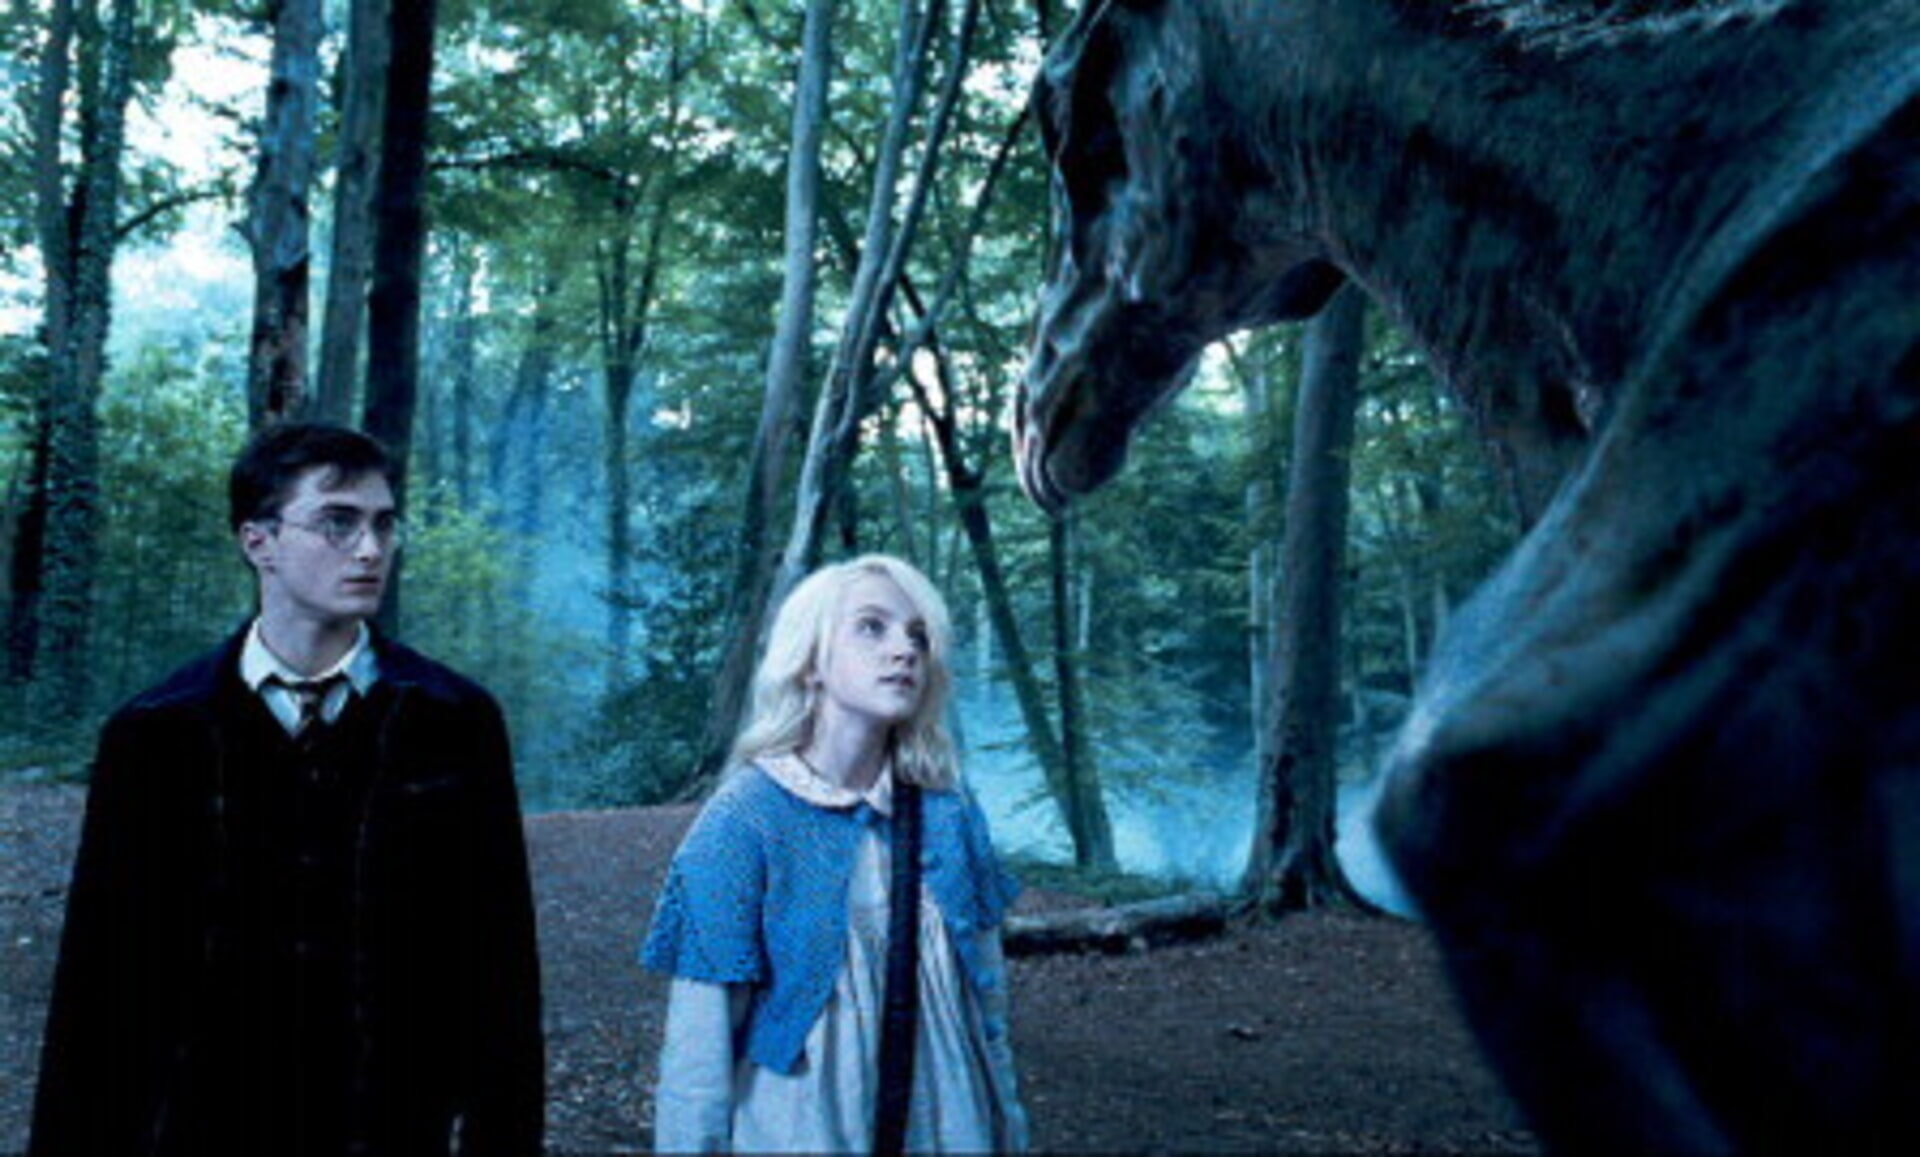 Harry Potter and the Order of the Phoenix - Image 9